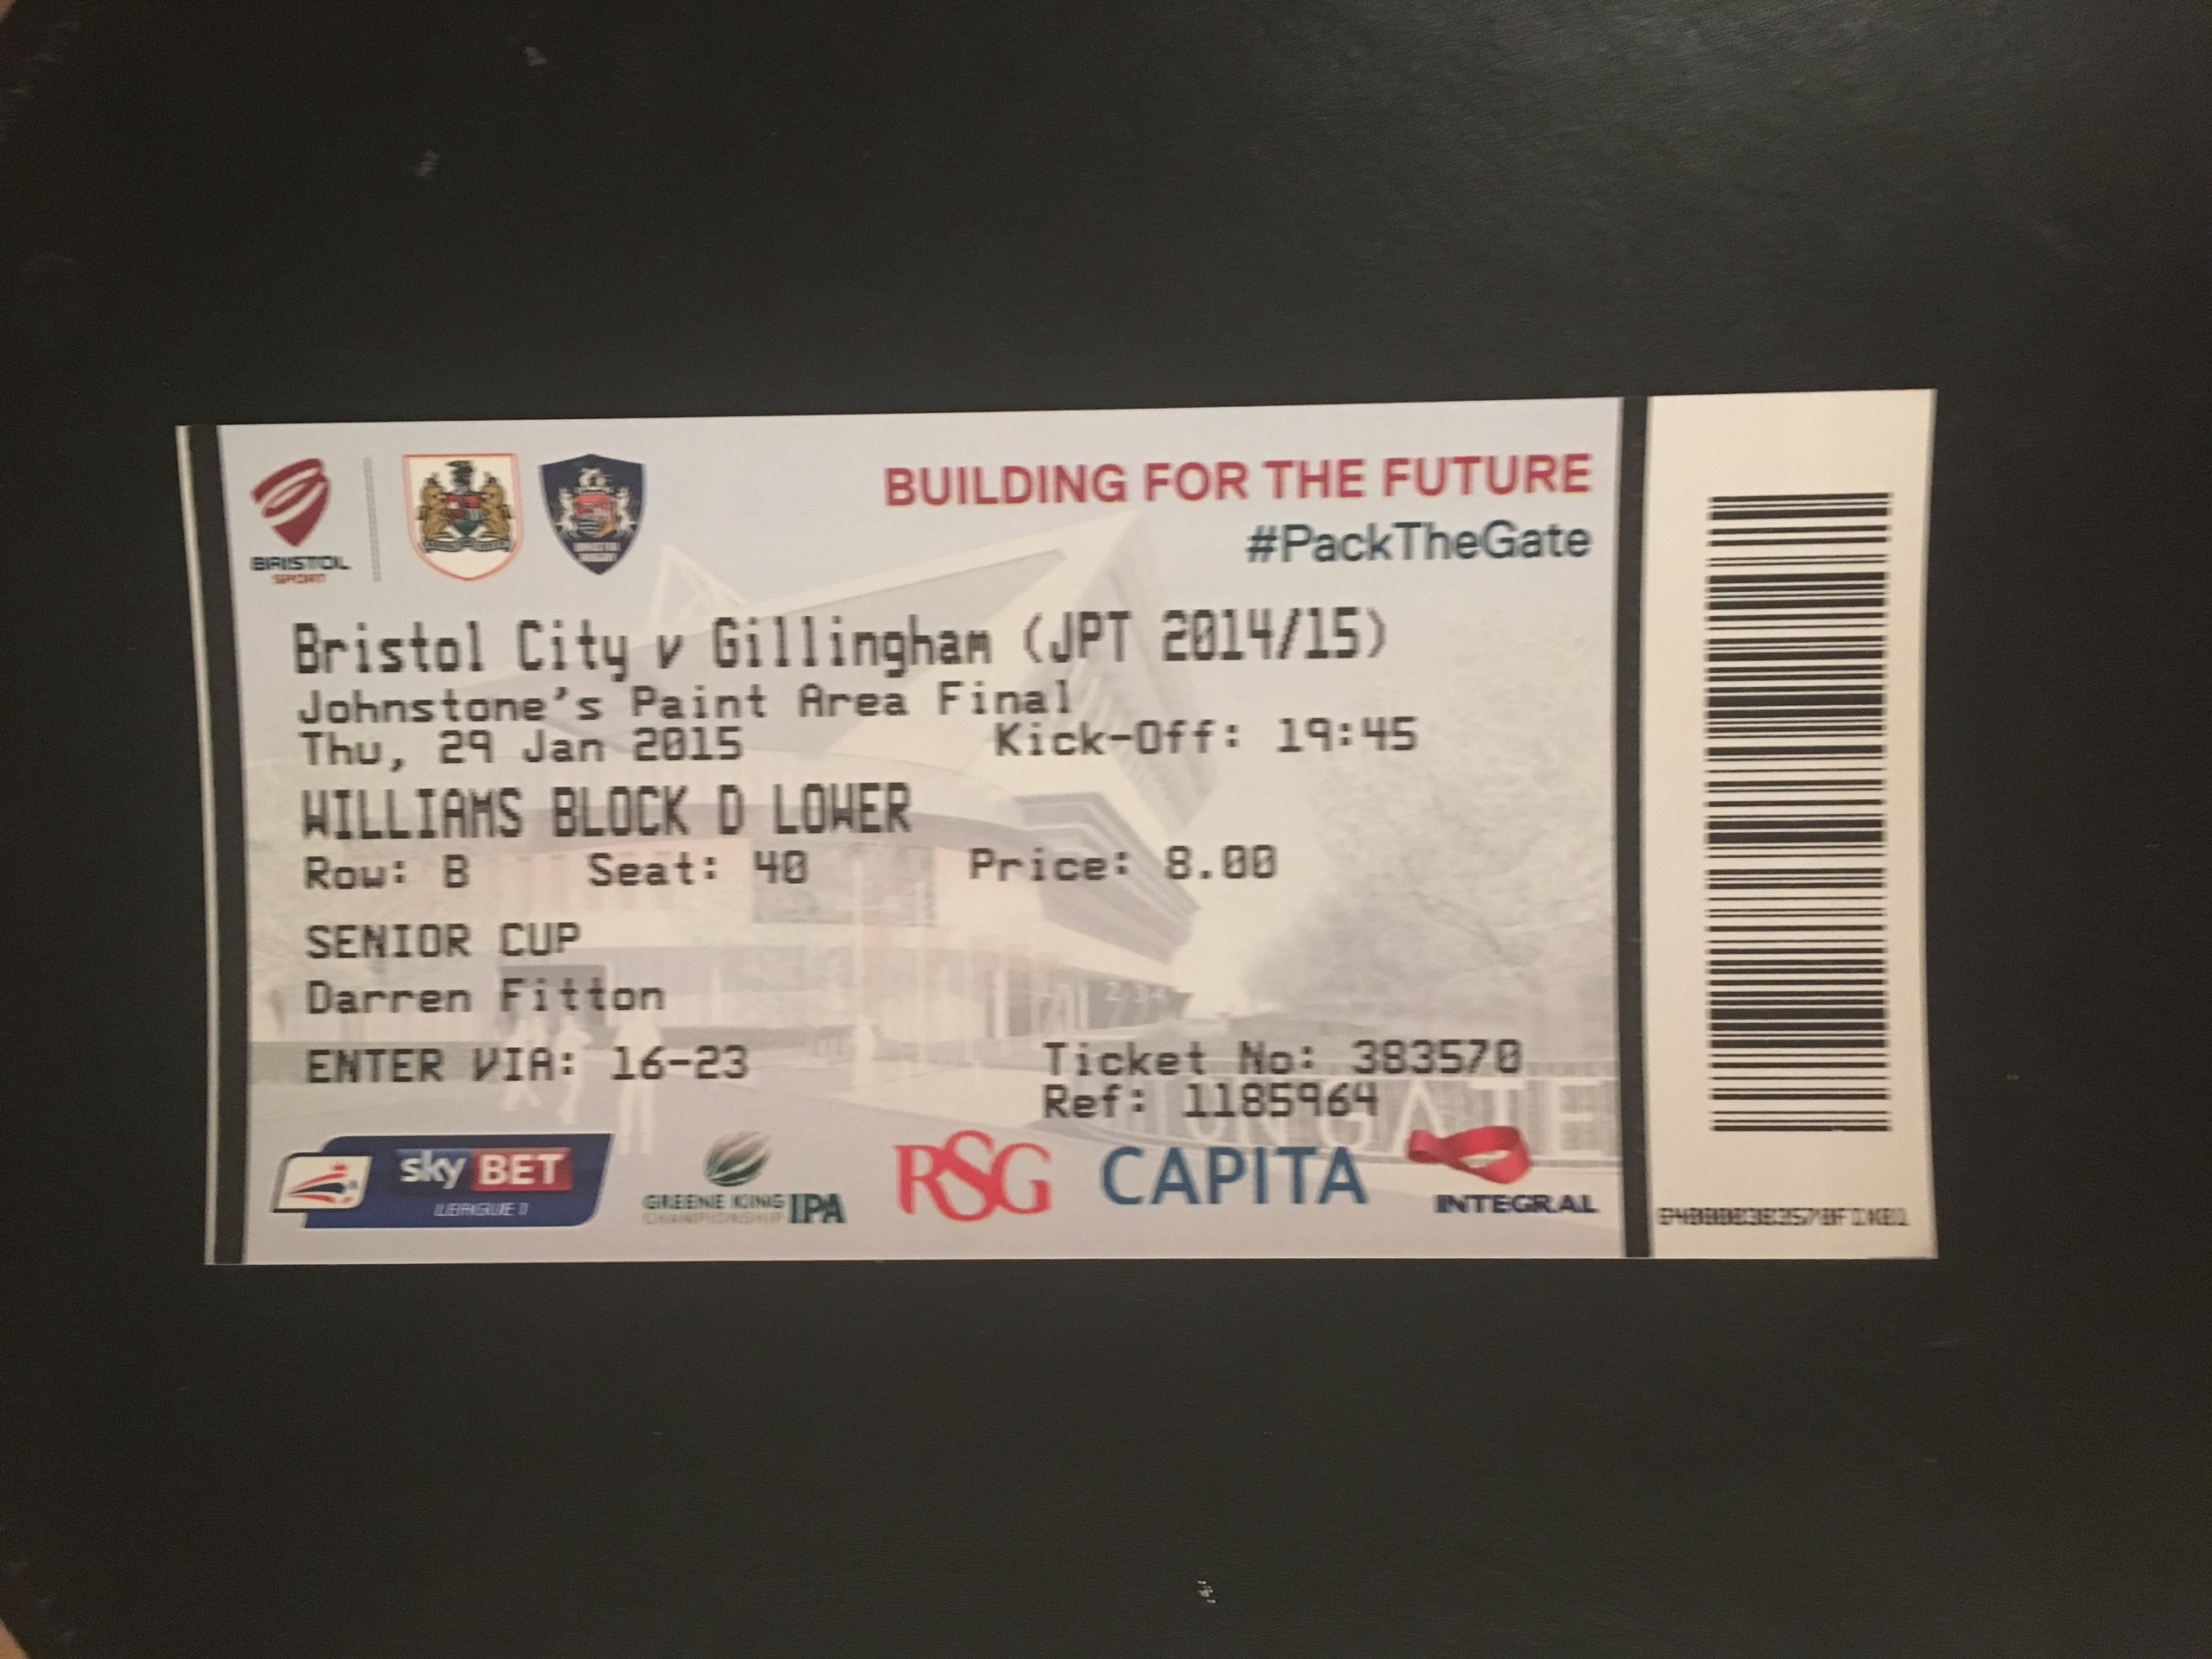 Bristol City v Gillingham 29-01-2015 Ticket